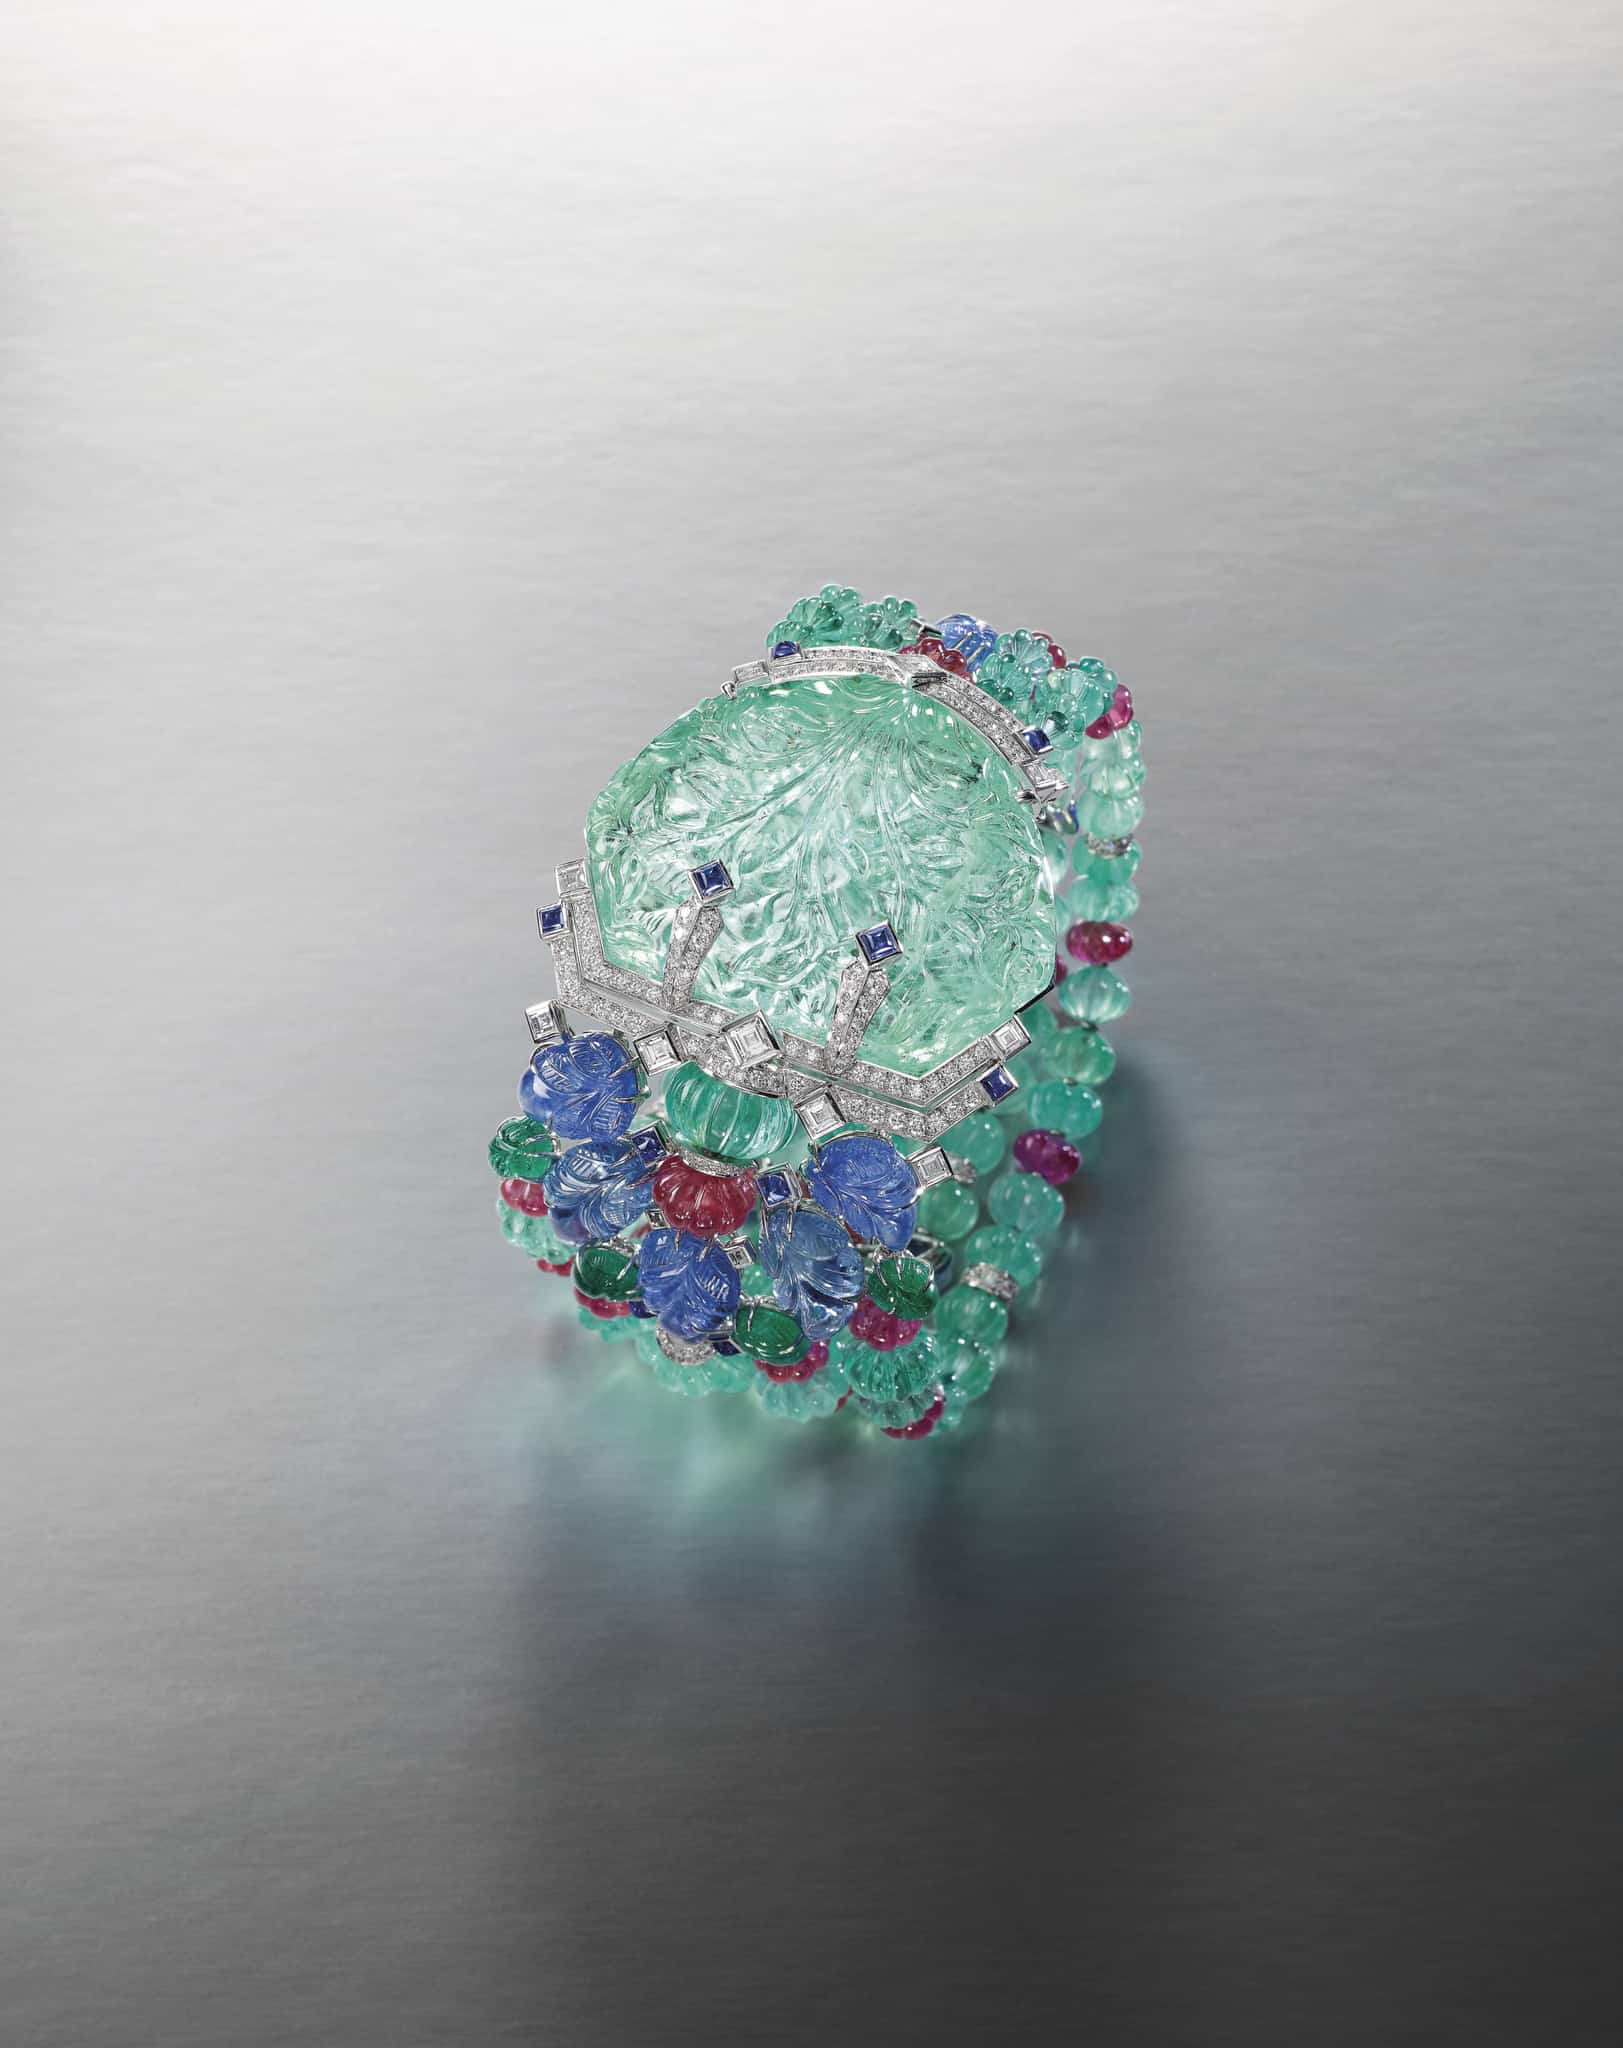 Bonhams to present iconic 'Tutti Frutti' bracelet by Cartier